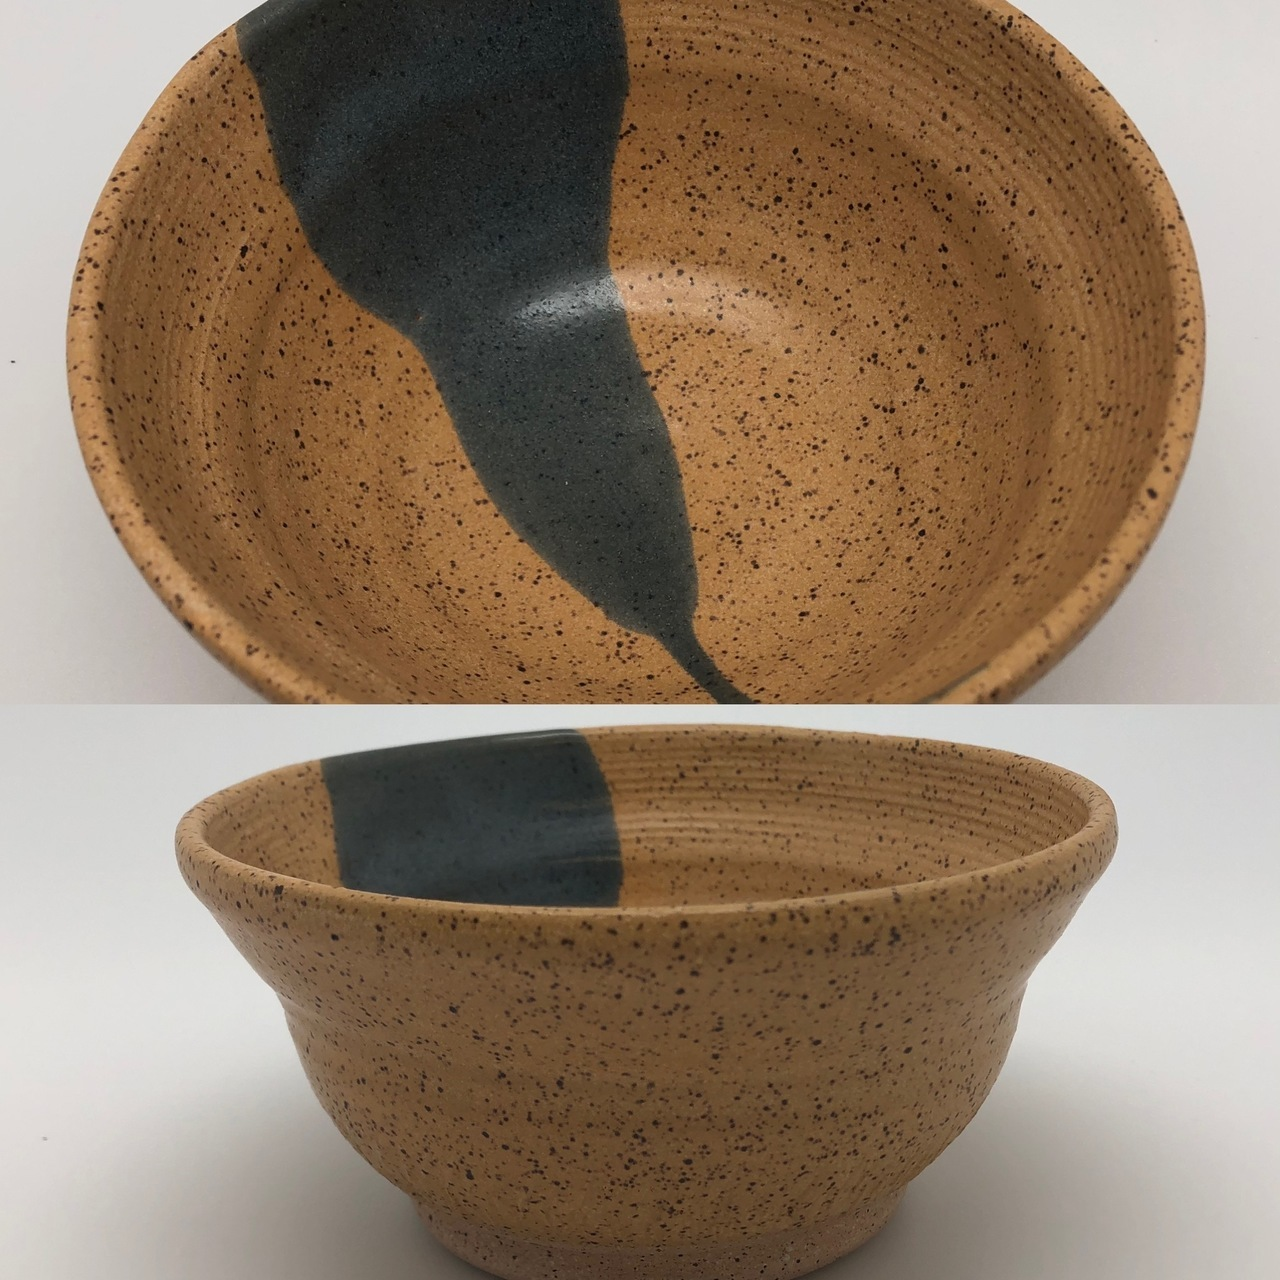 Speckled Sand Bowl with Gray Accent